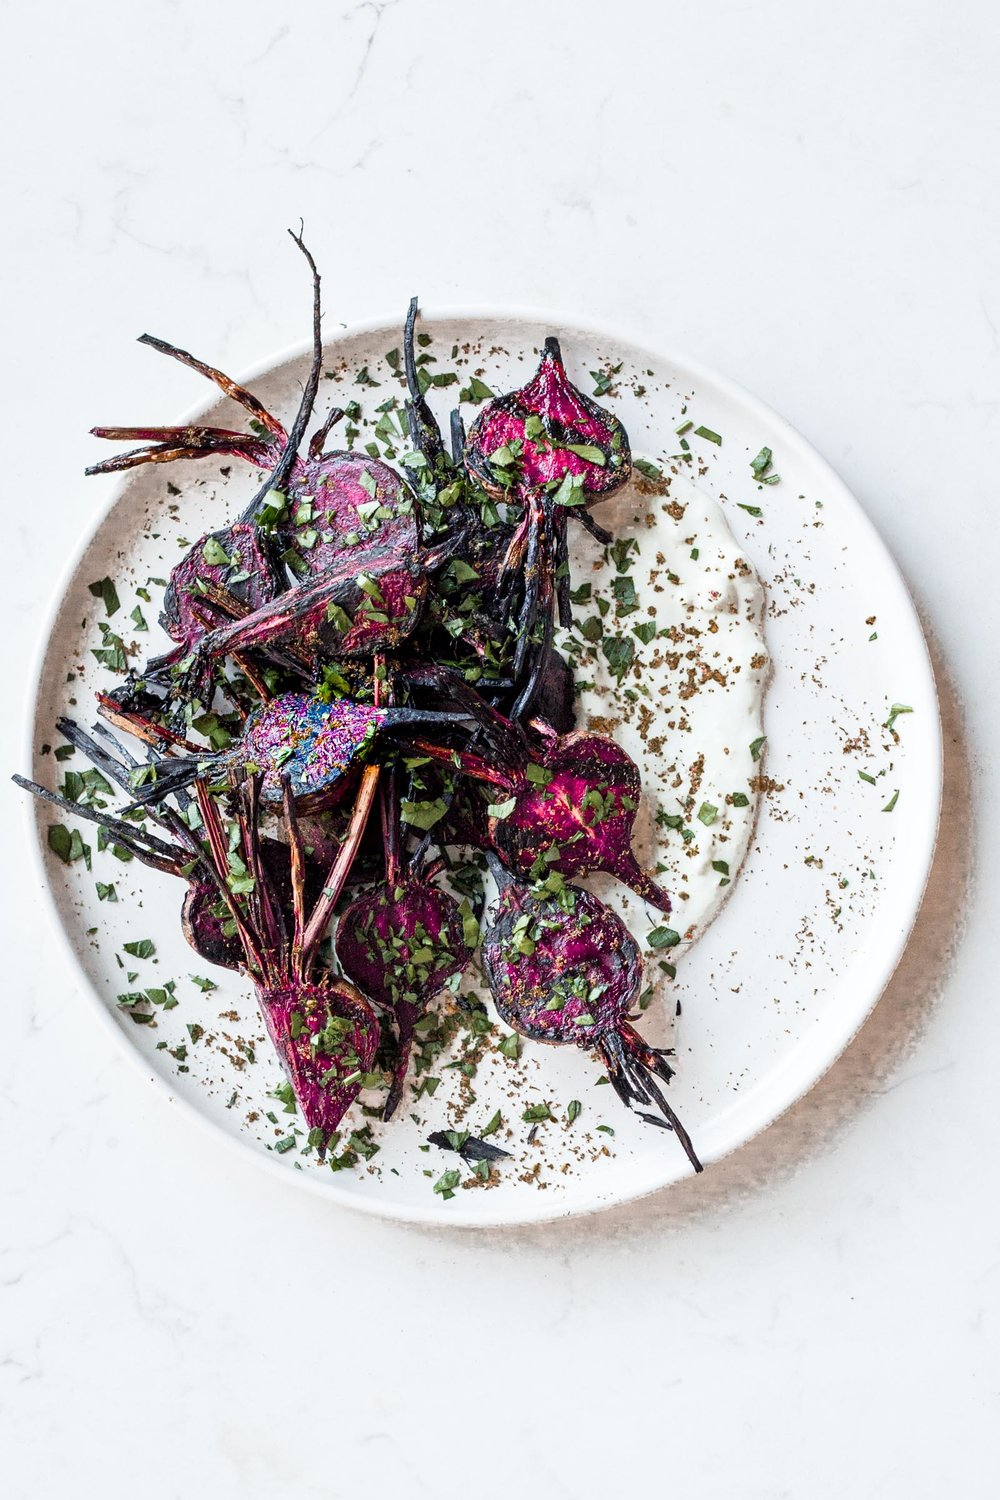 Grilled Beets with Za'atar Yogurt Sauce